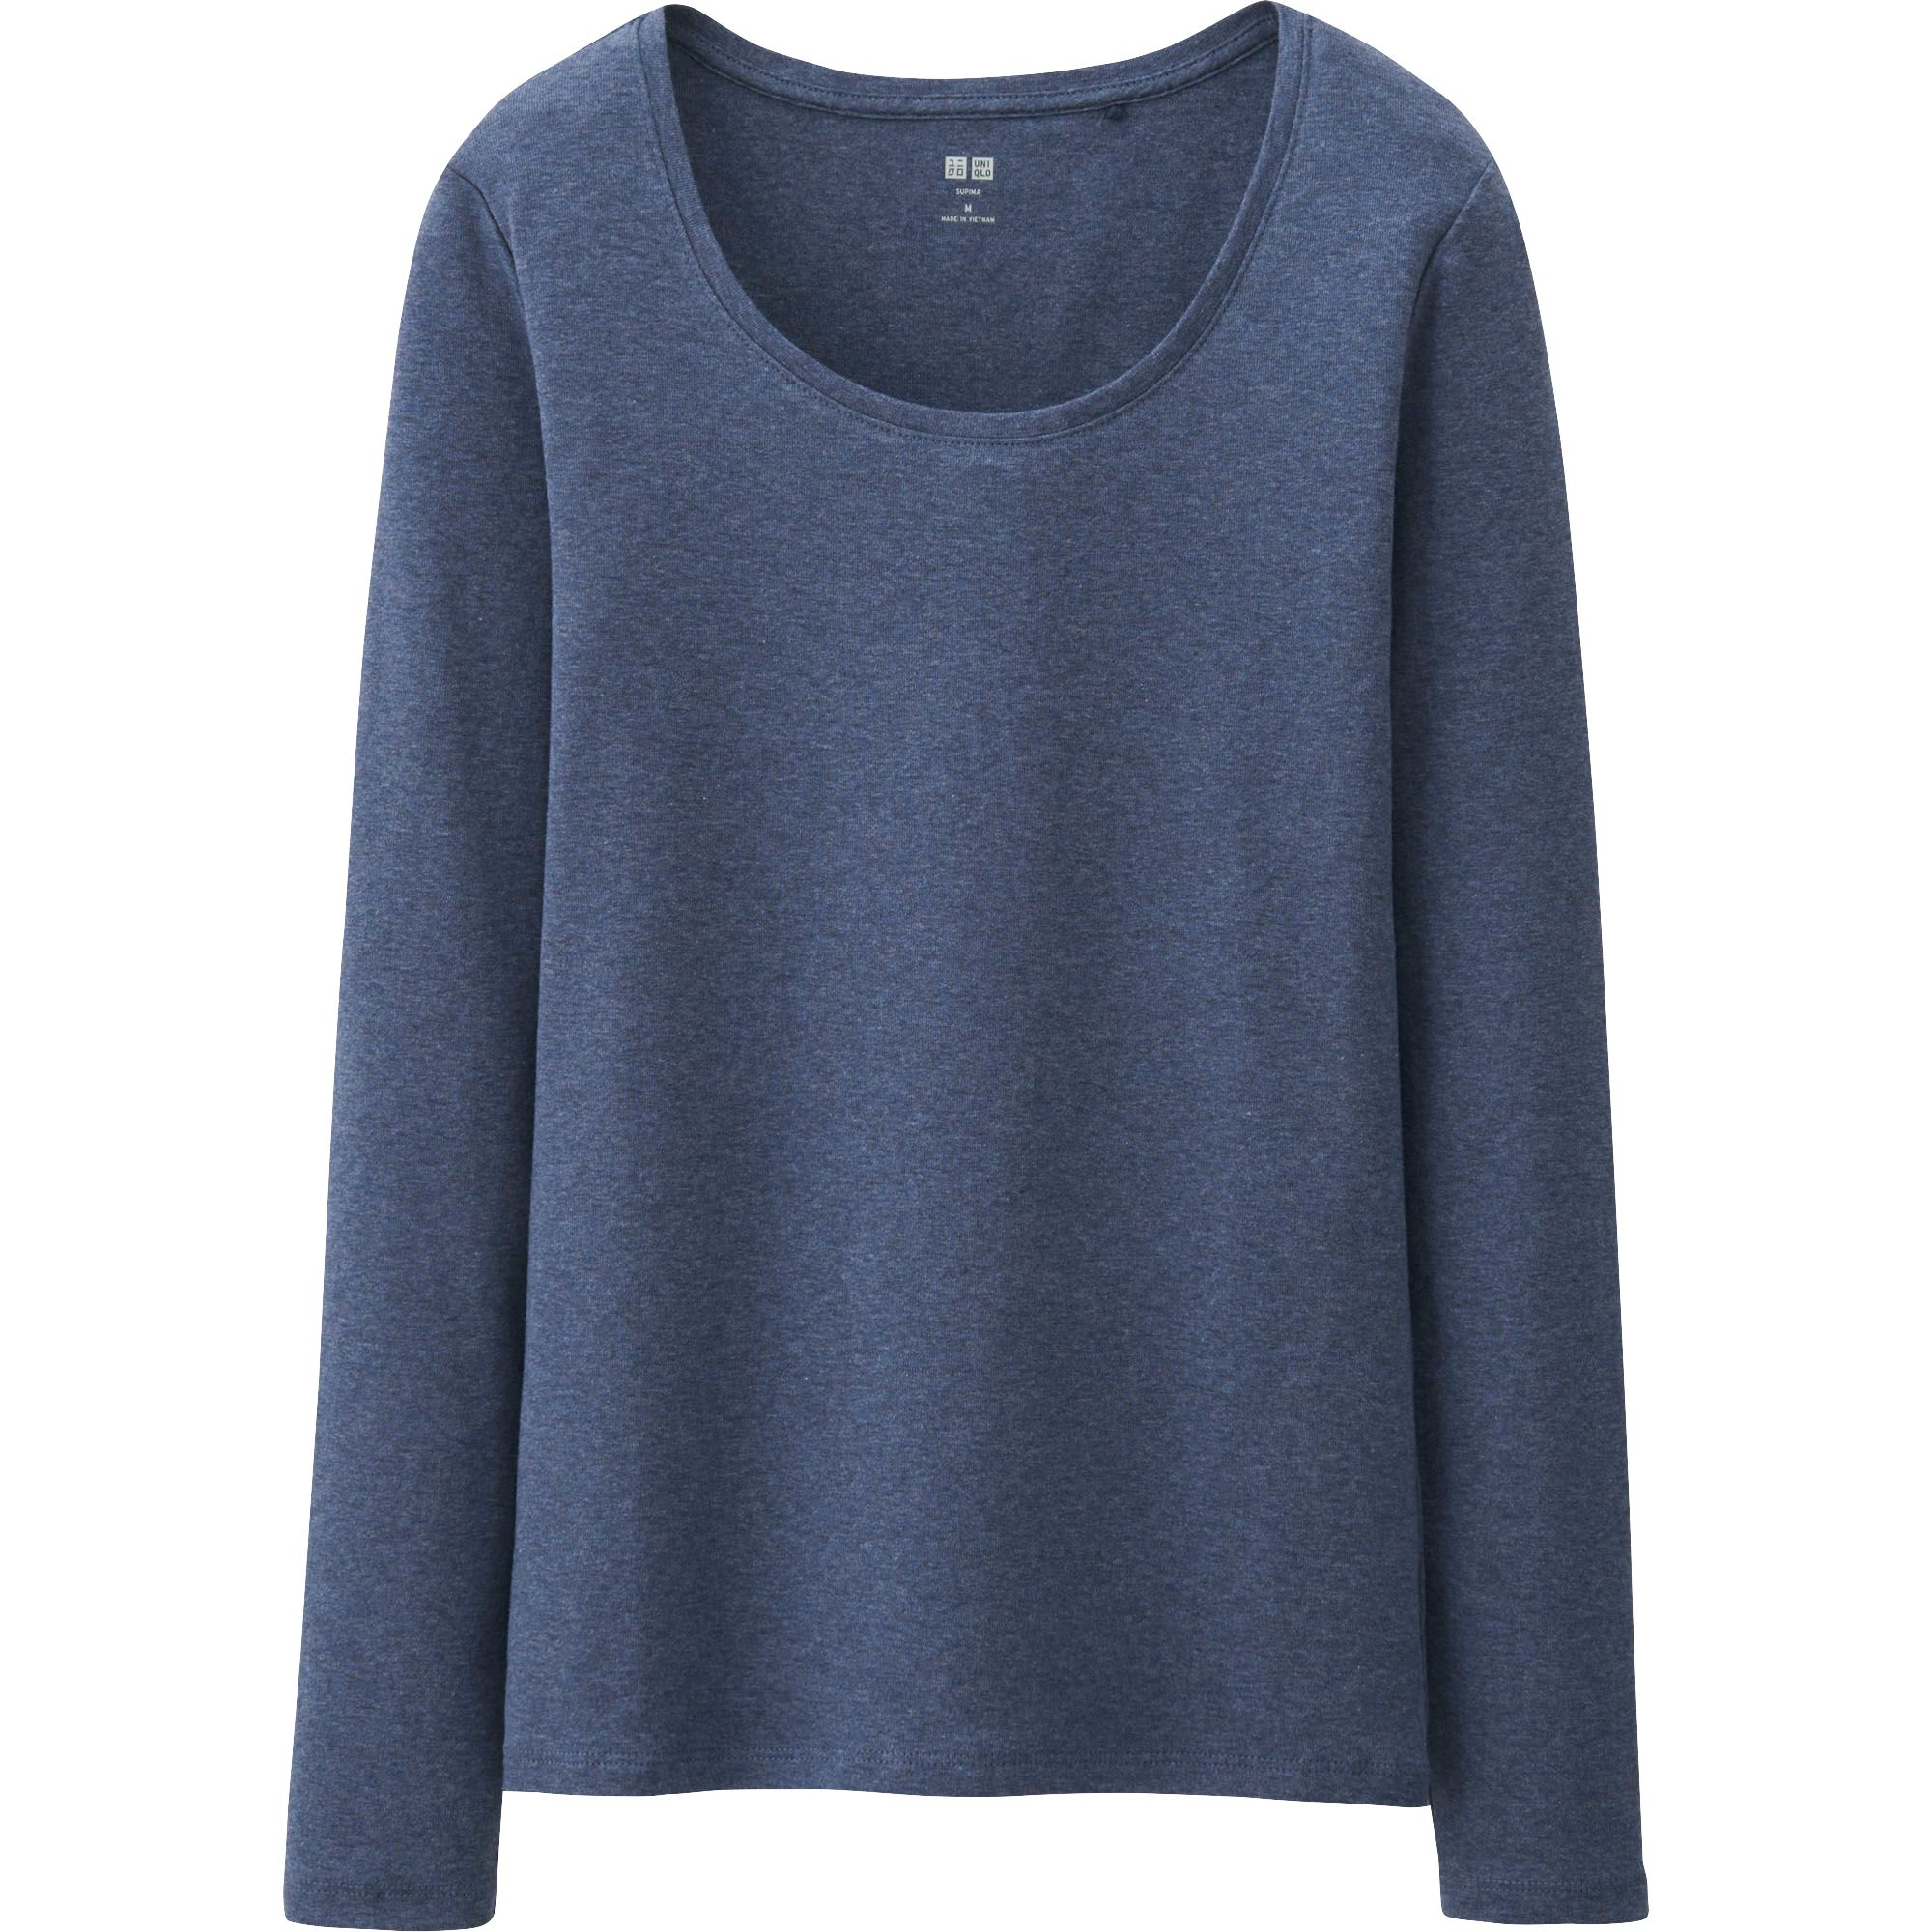 Uniqlo women supima cotton crew neck long sleeve t shirt for Women s crew t shirts